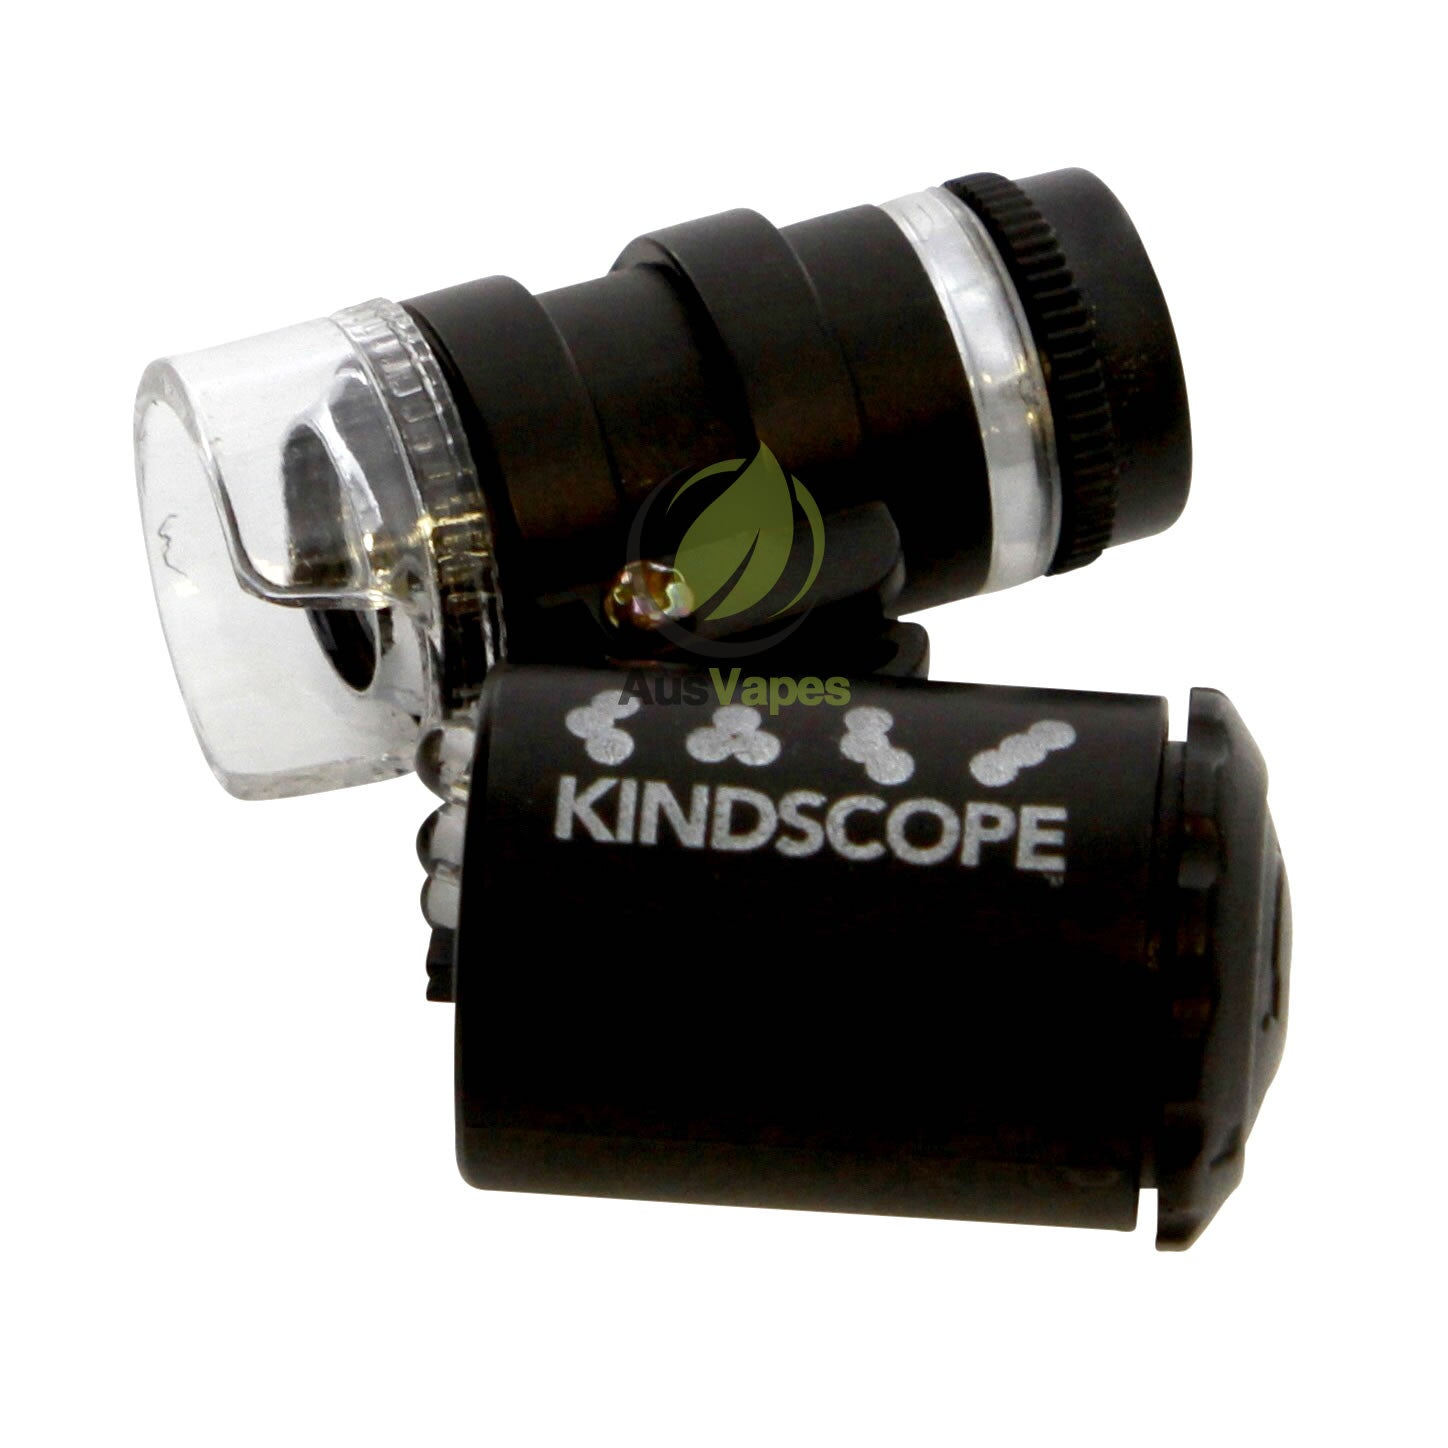 DISCONTINUED Kindstack Spy Kit